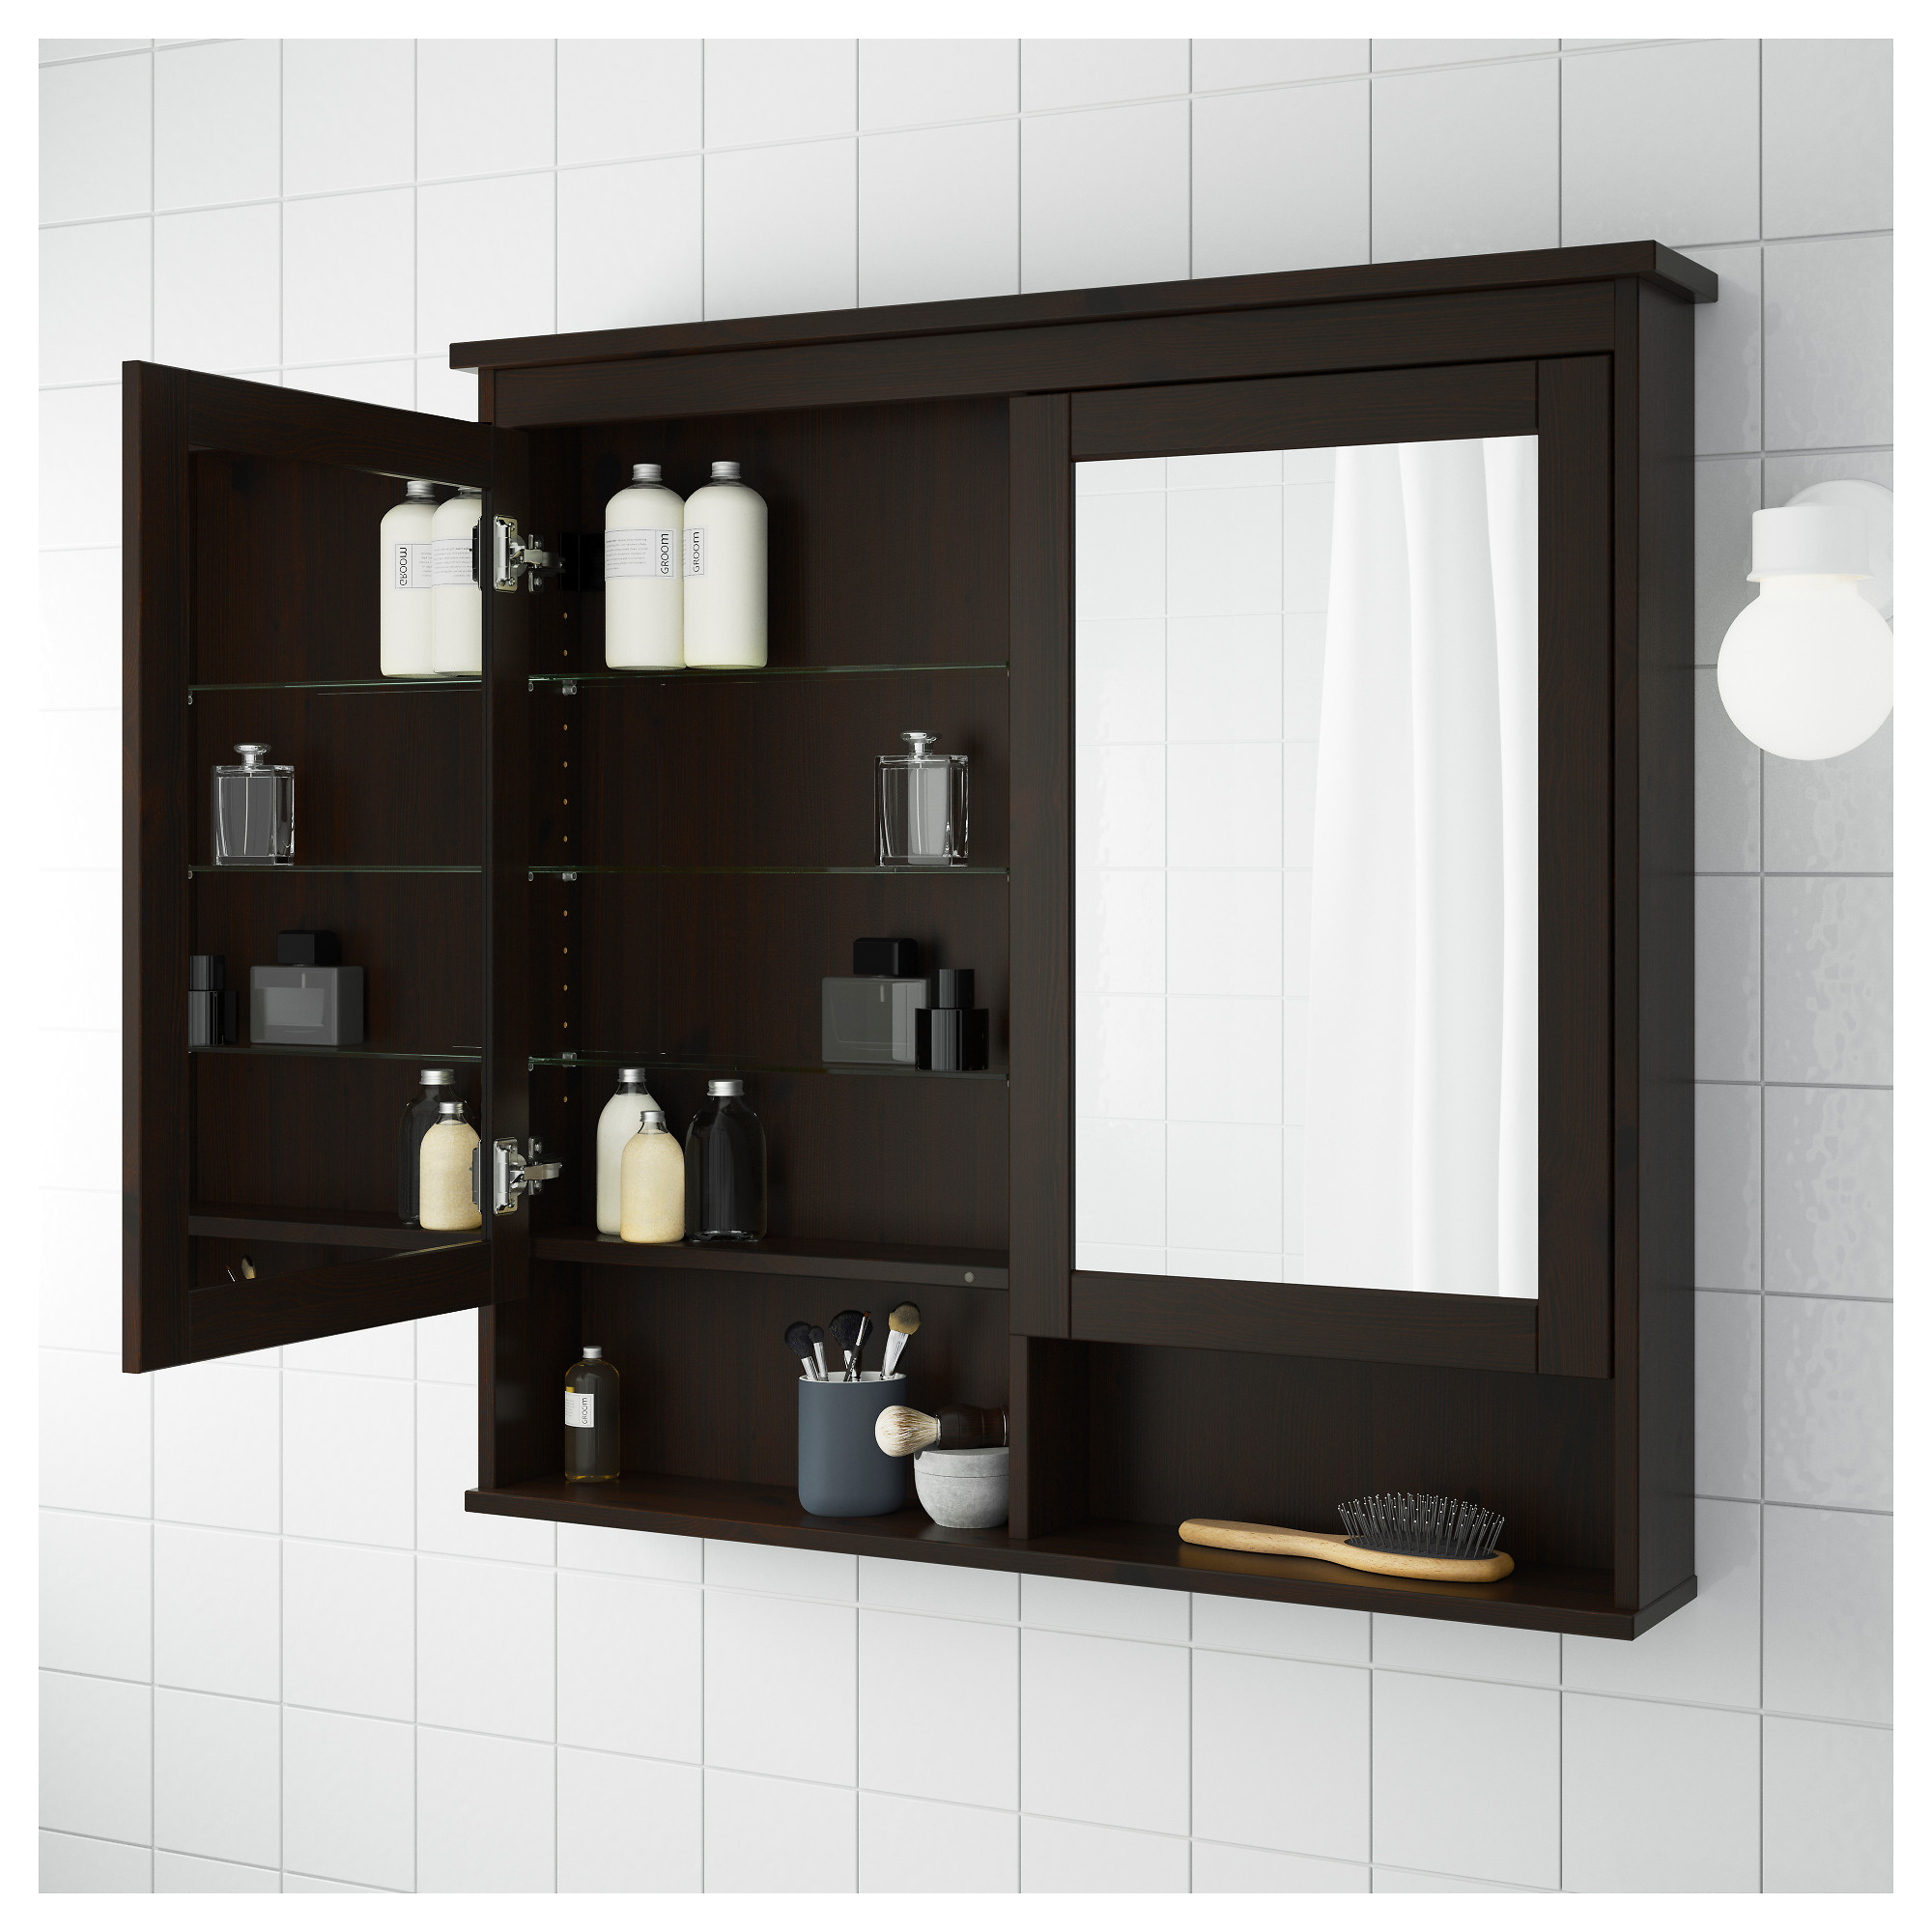 Hemnes Mirror Cabinet With 2 Doors Black Brown Stain 83x16x98 Cm Ikea